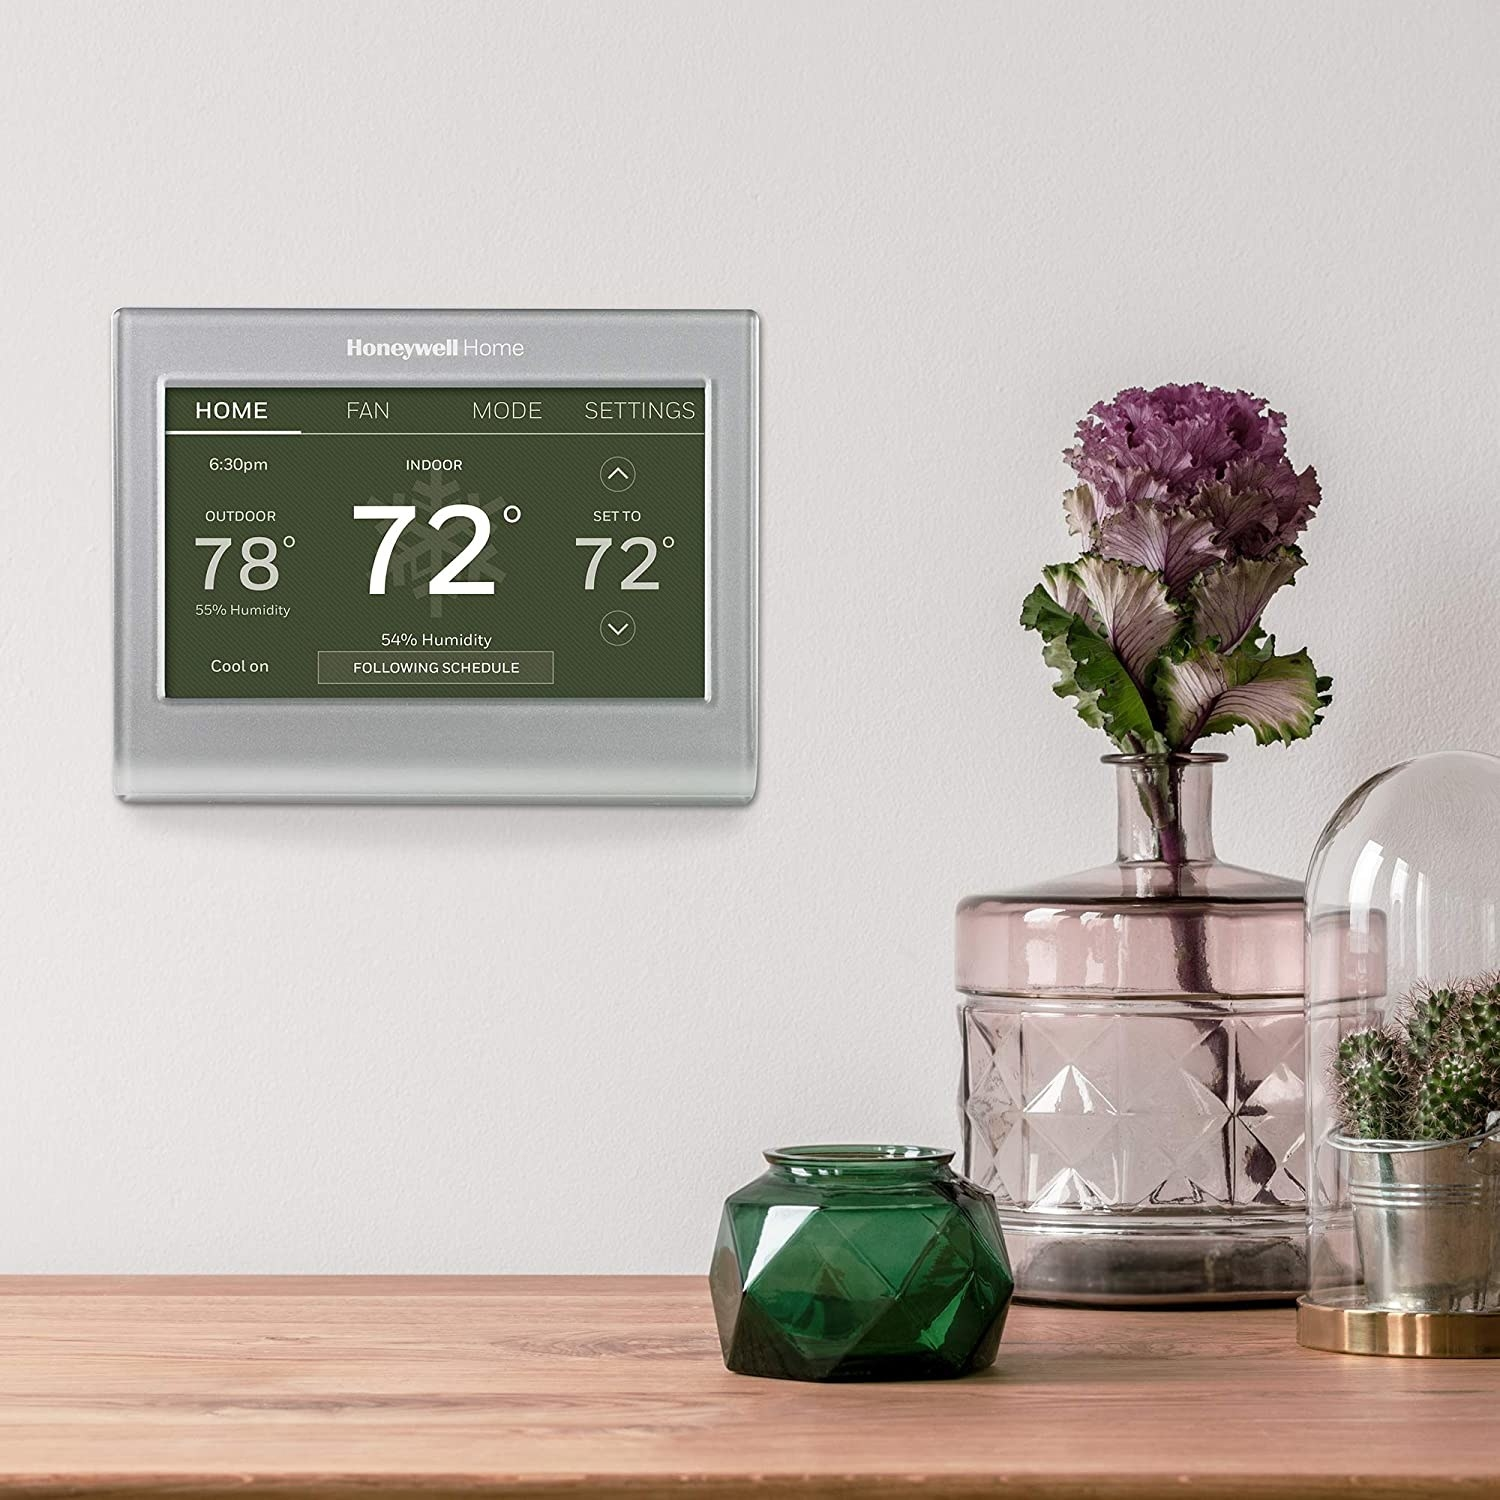 The thermostat hung on a wall next to some geometric glass vases